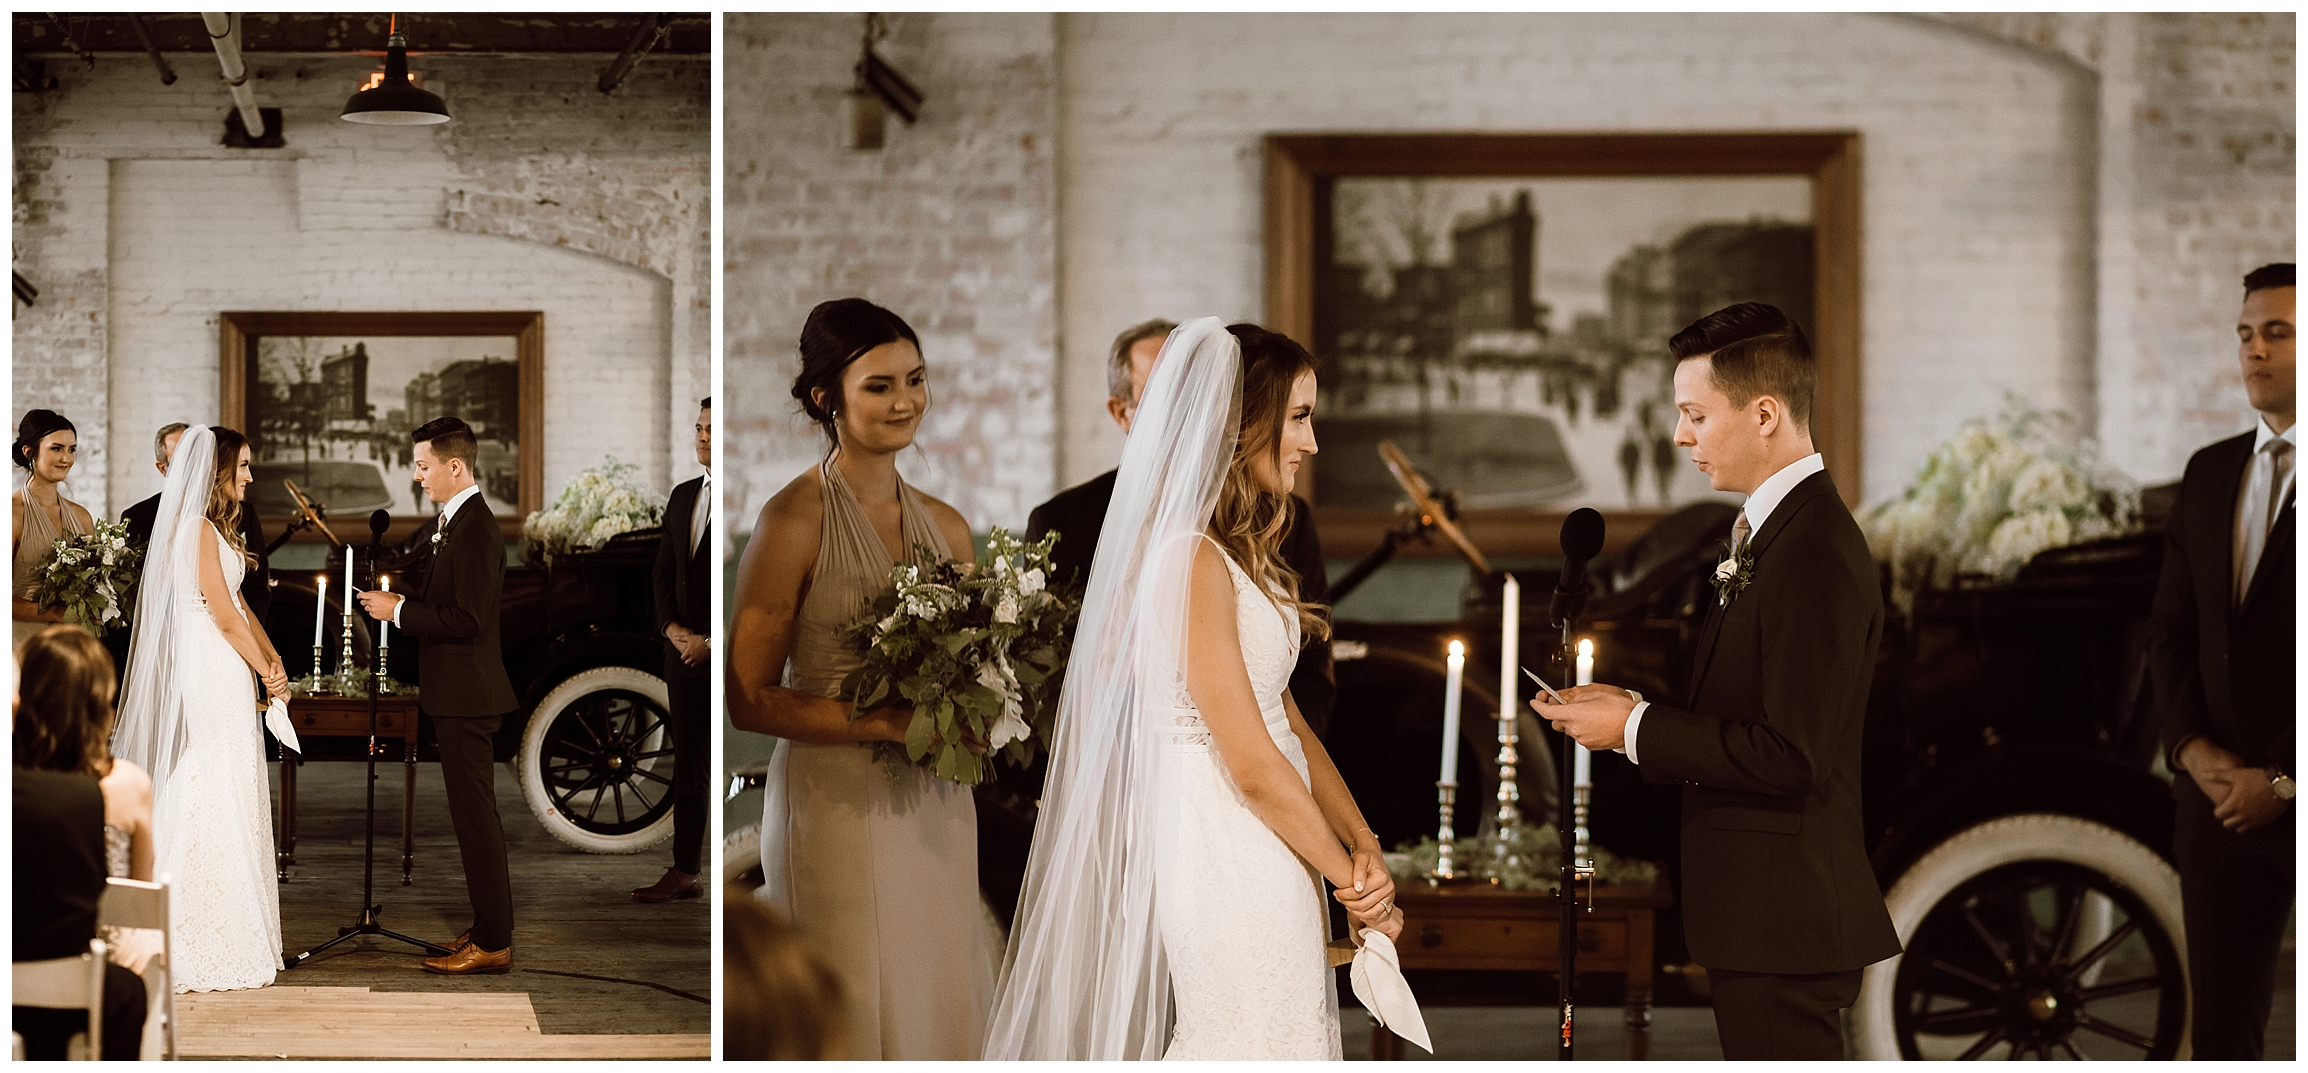 Katie_Vonasek_Photography_Ford_Piquette_Plant_Wedding_Detroit71.JPG